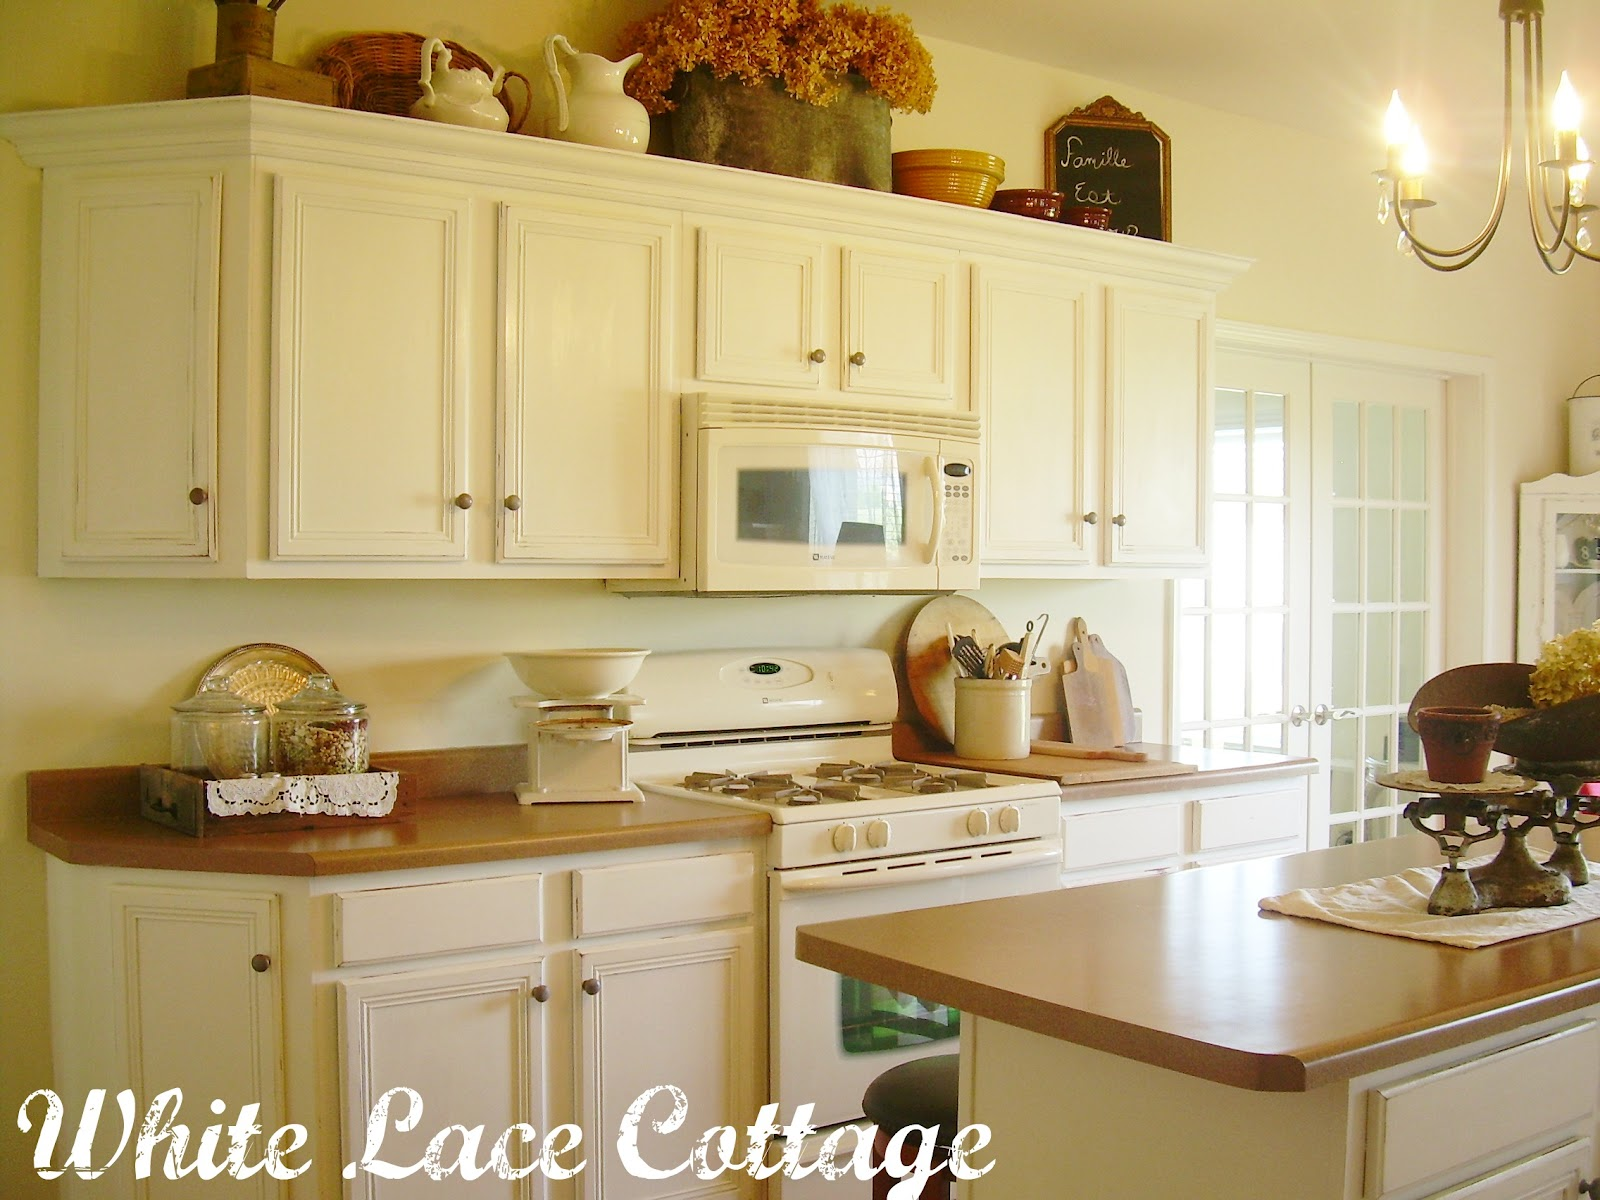 off white kitchen cabinets paint color painting kitchen cabinets white Kitchen